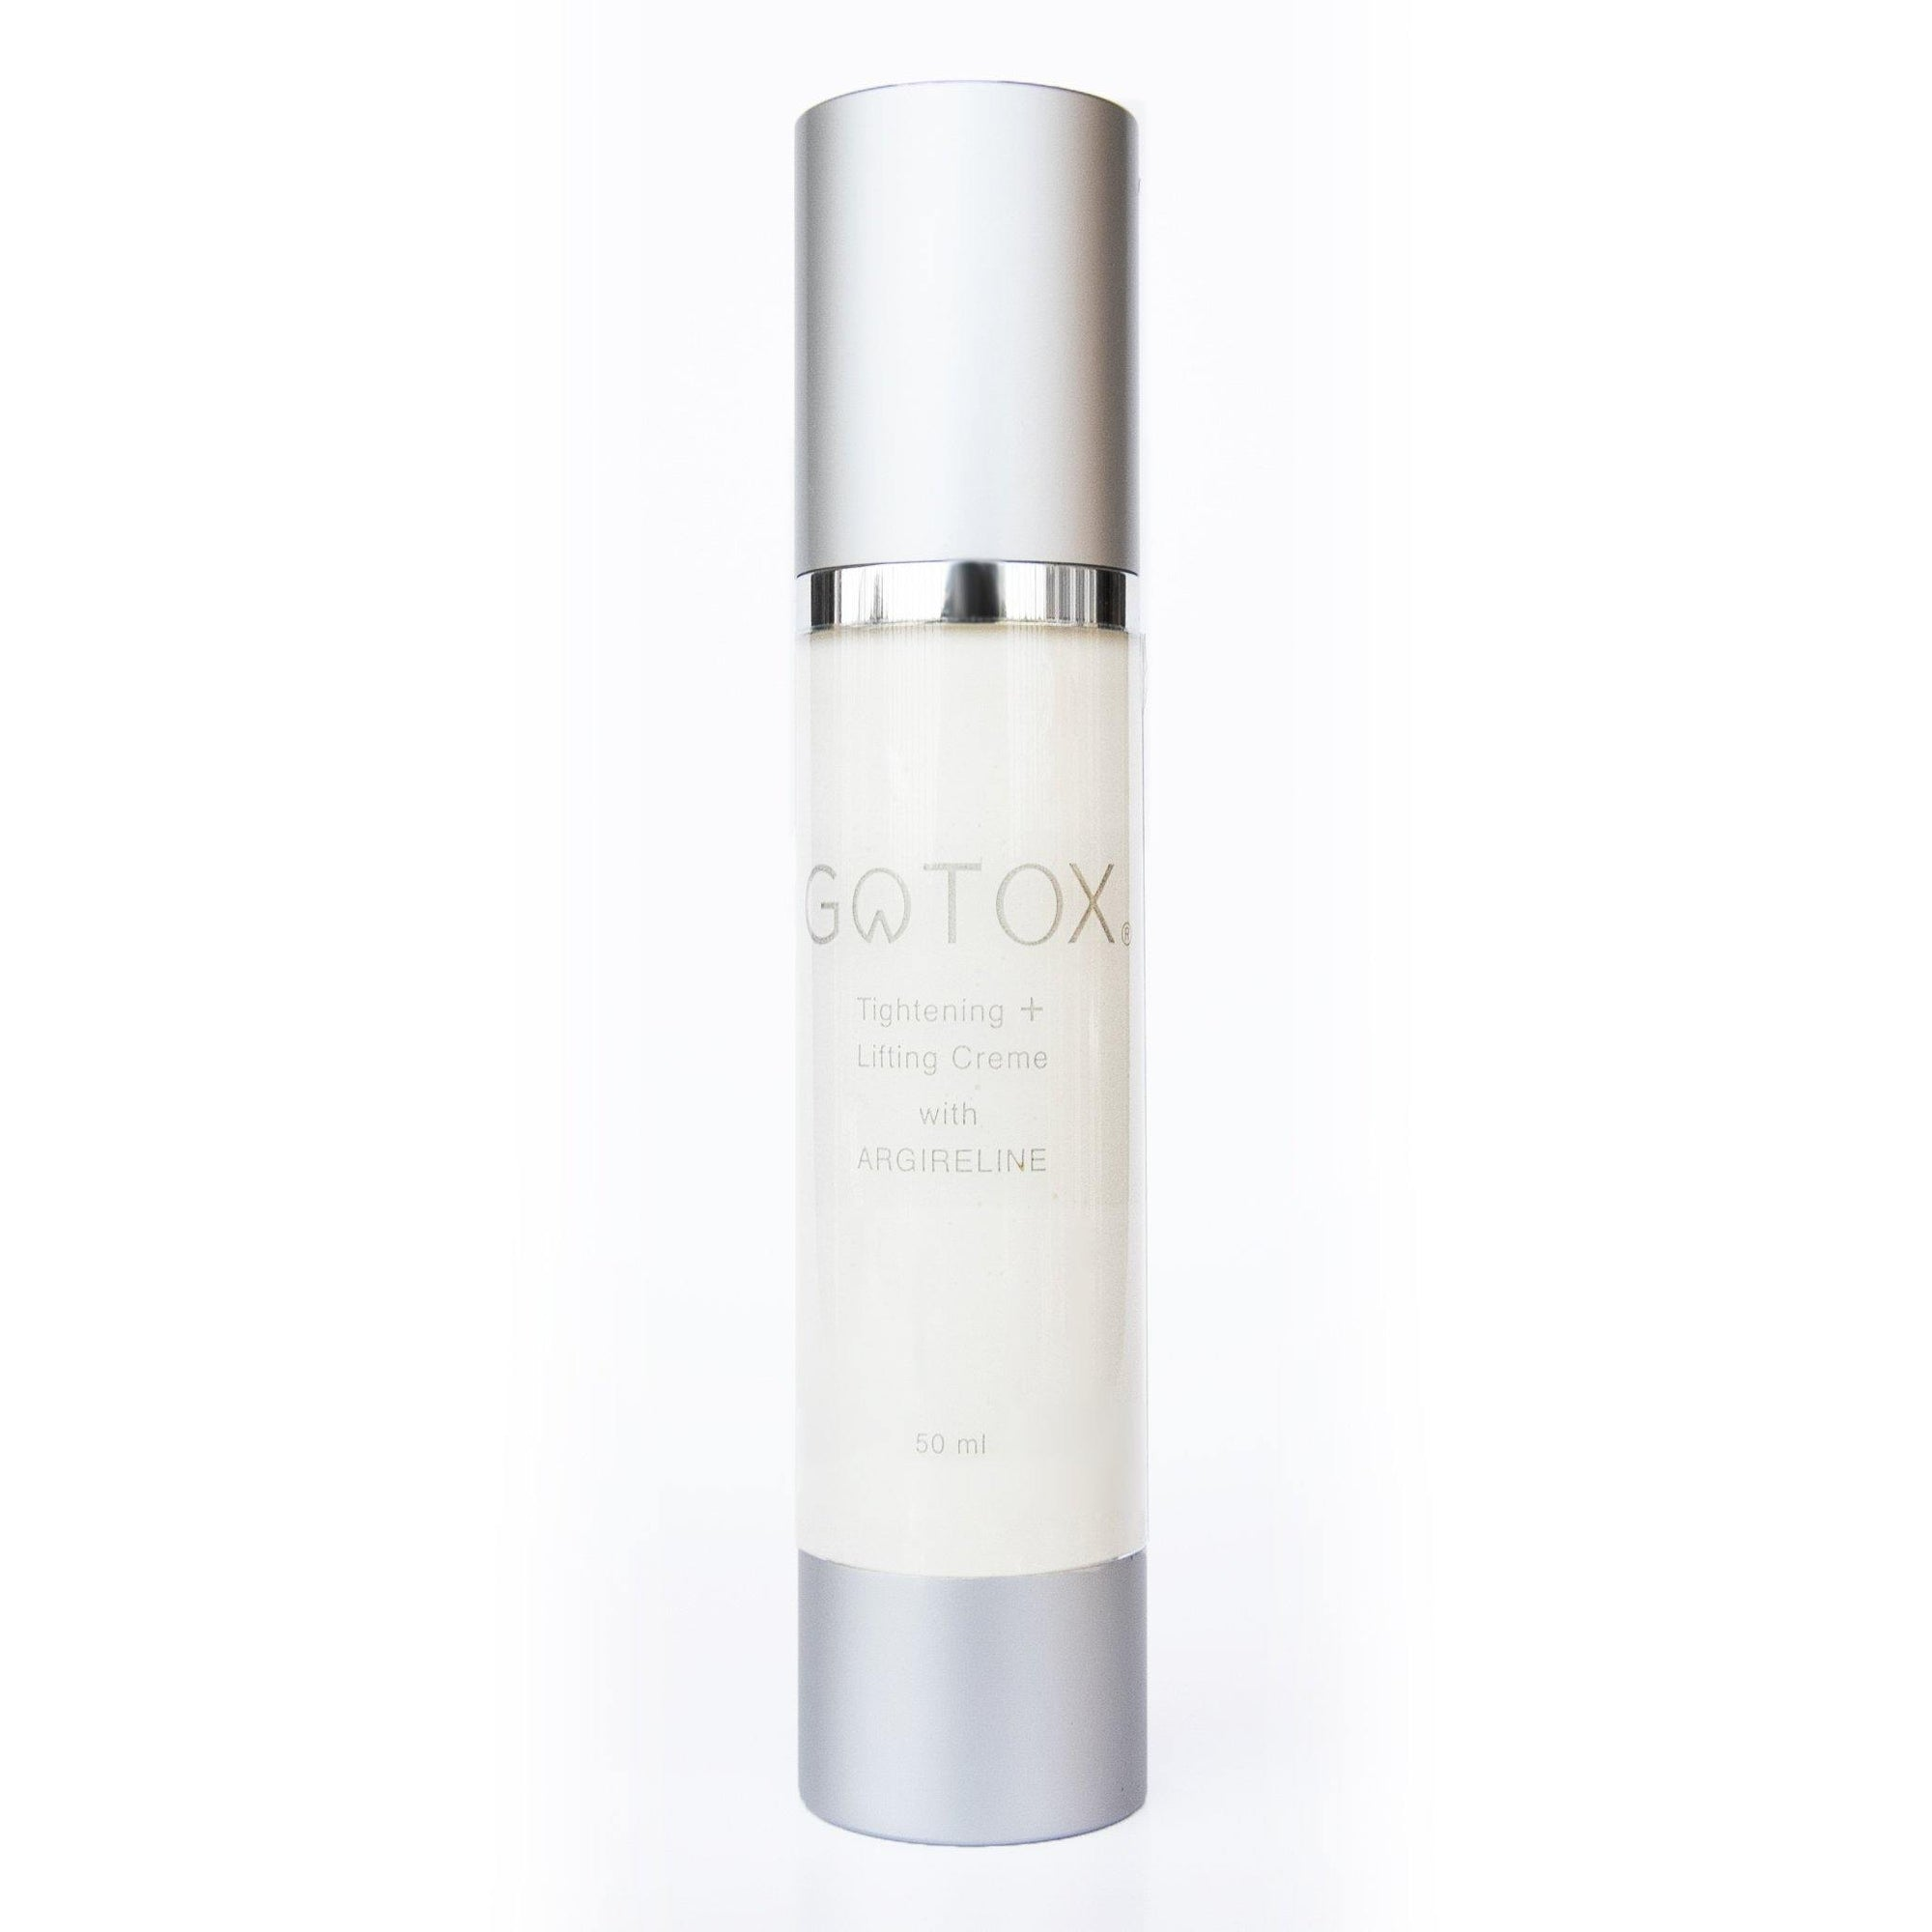 Gotox Tightening and Lifting Cream